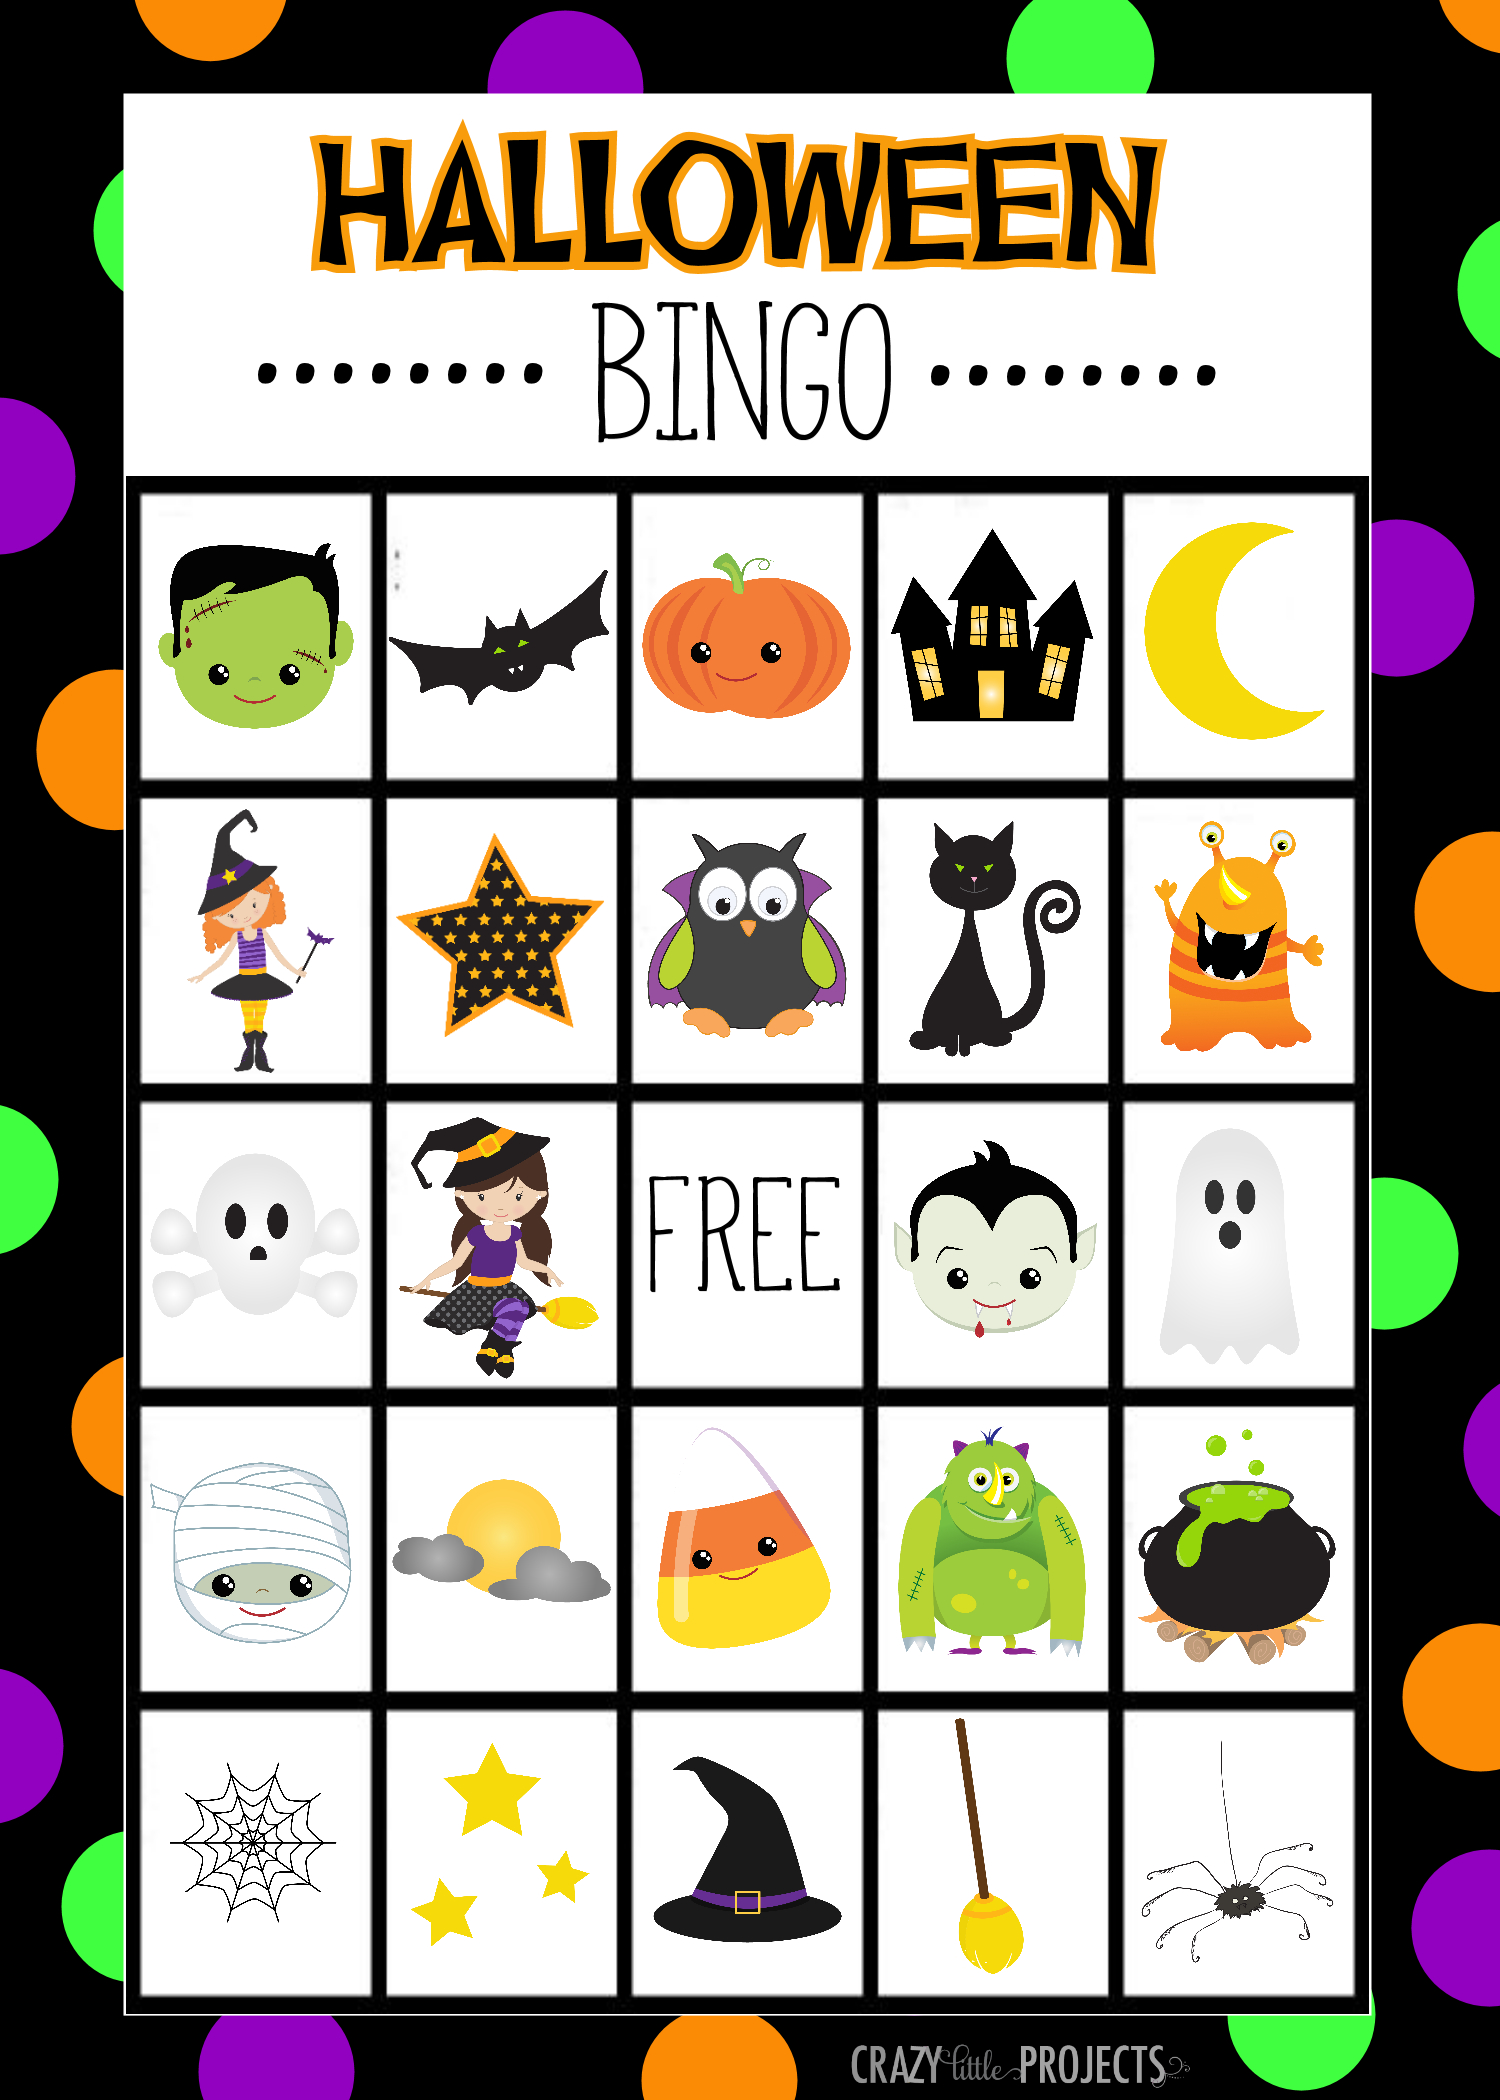 Free Printable Halloween Bingo Cardscrazy Little Projects - Free Printable Halloween Bingo